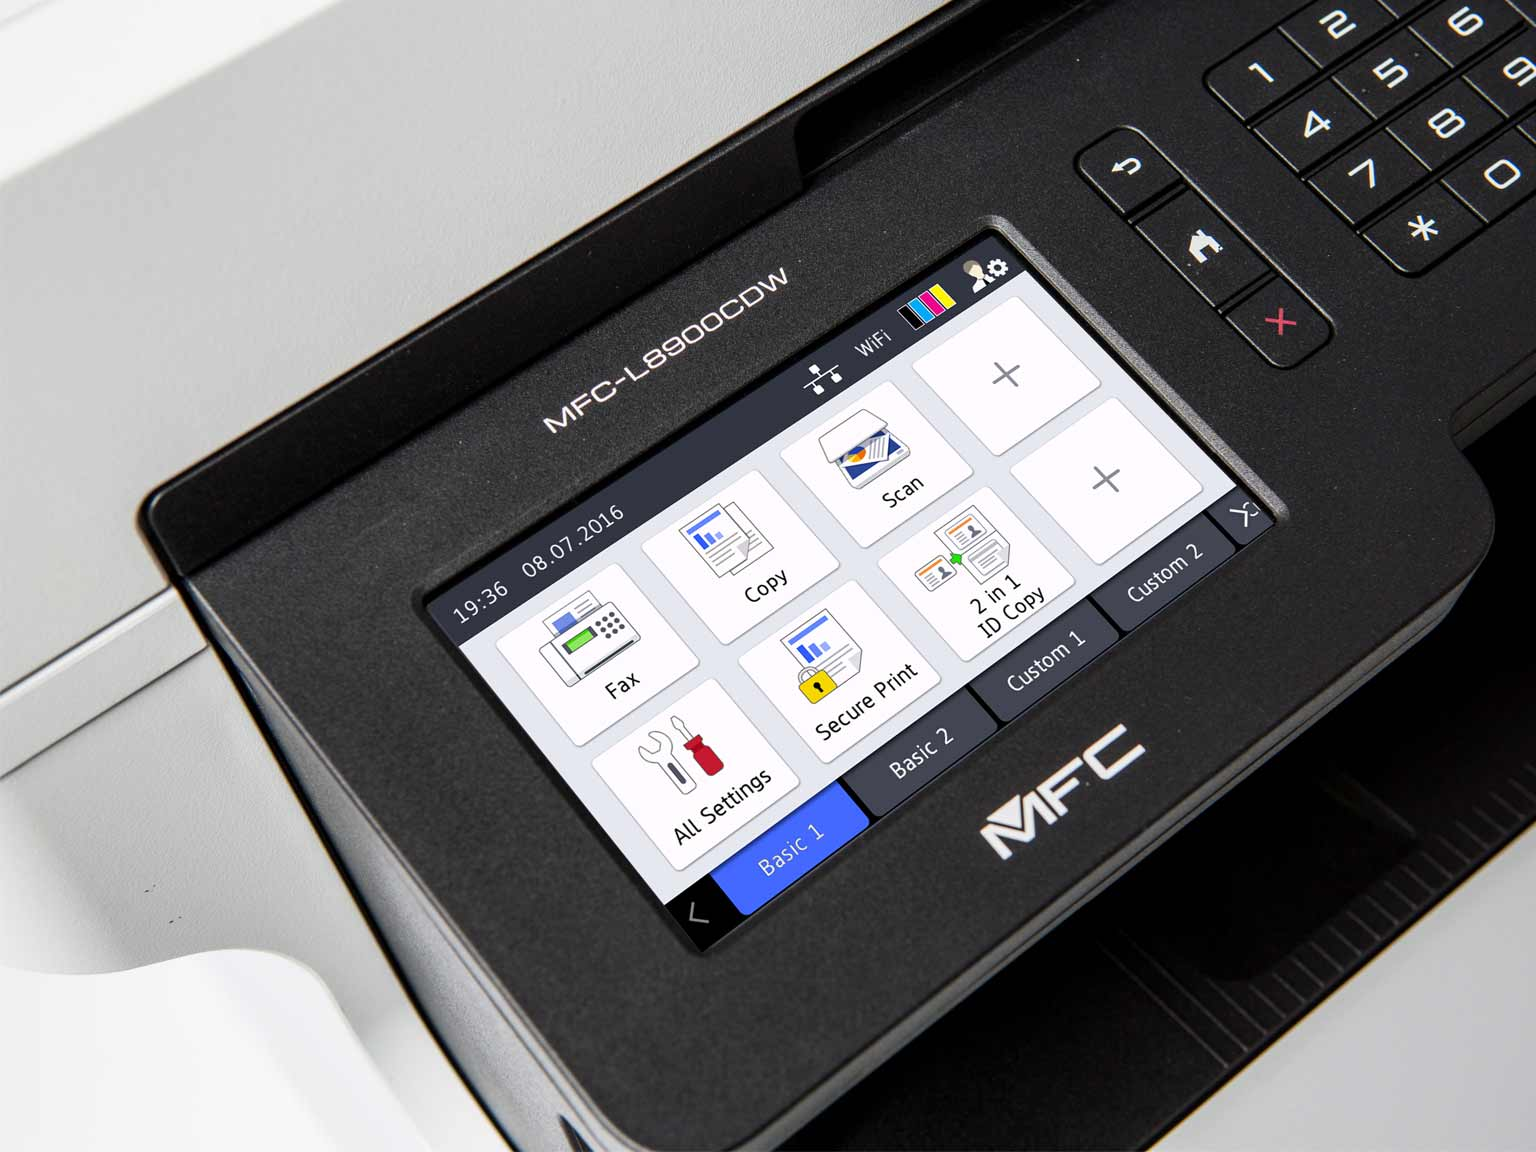 MFC-L8900CDW touch screen